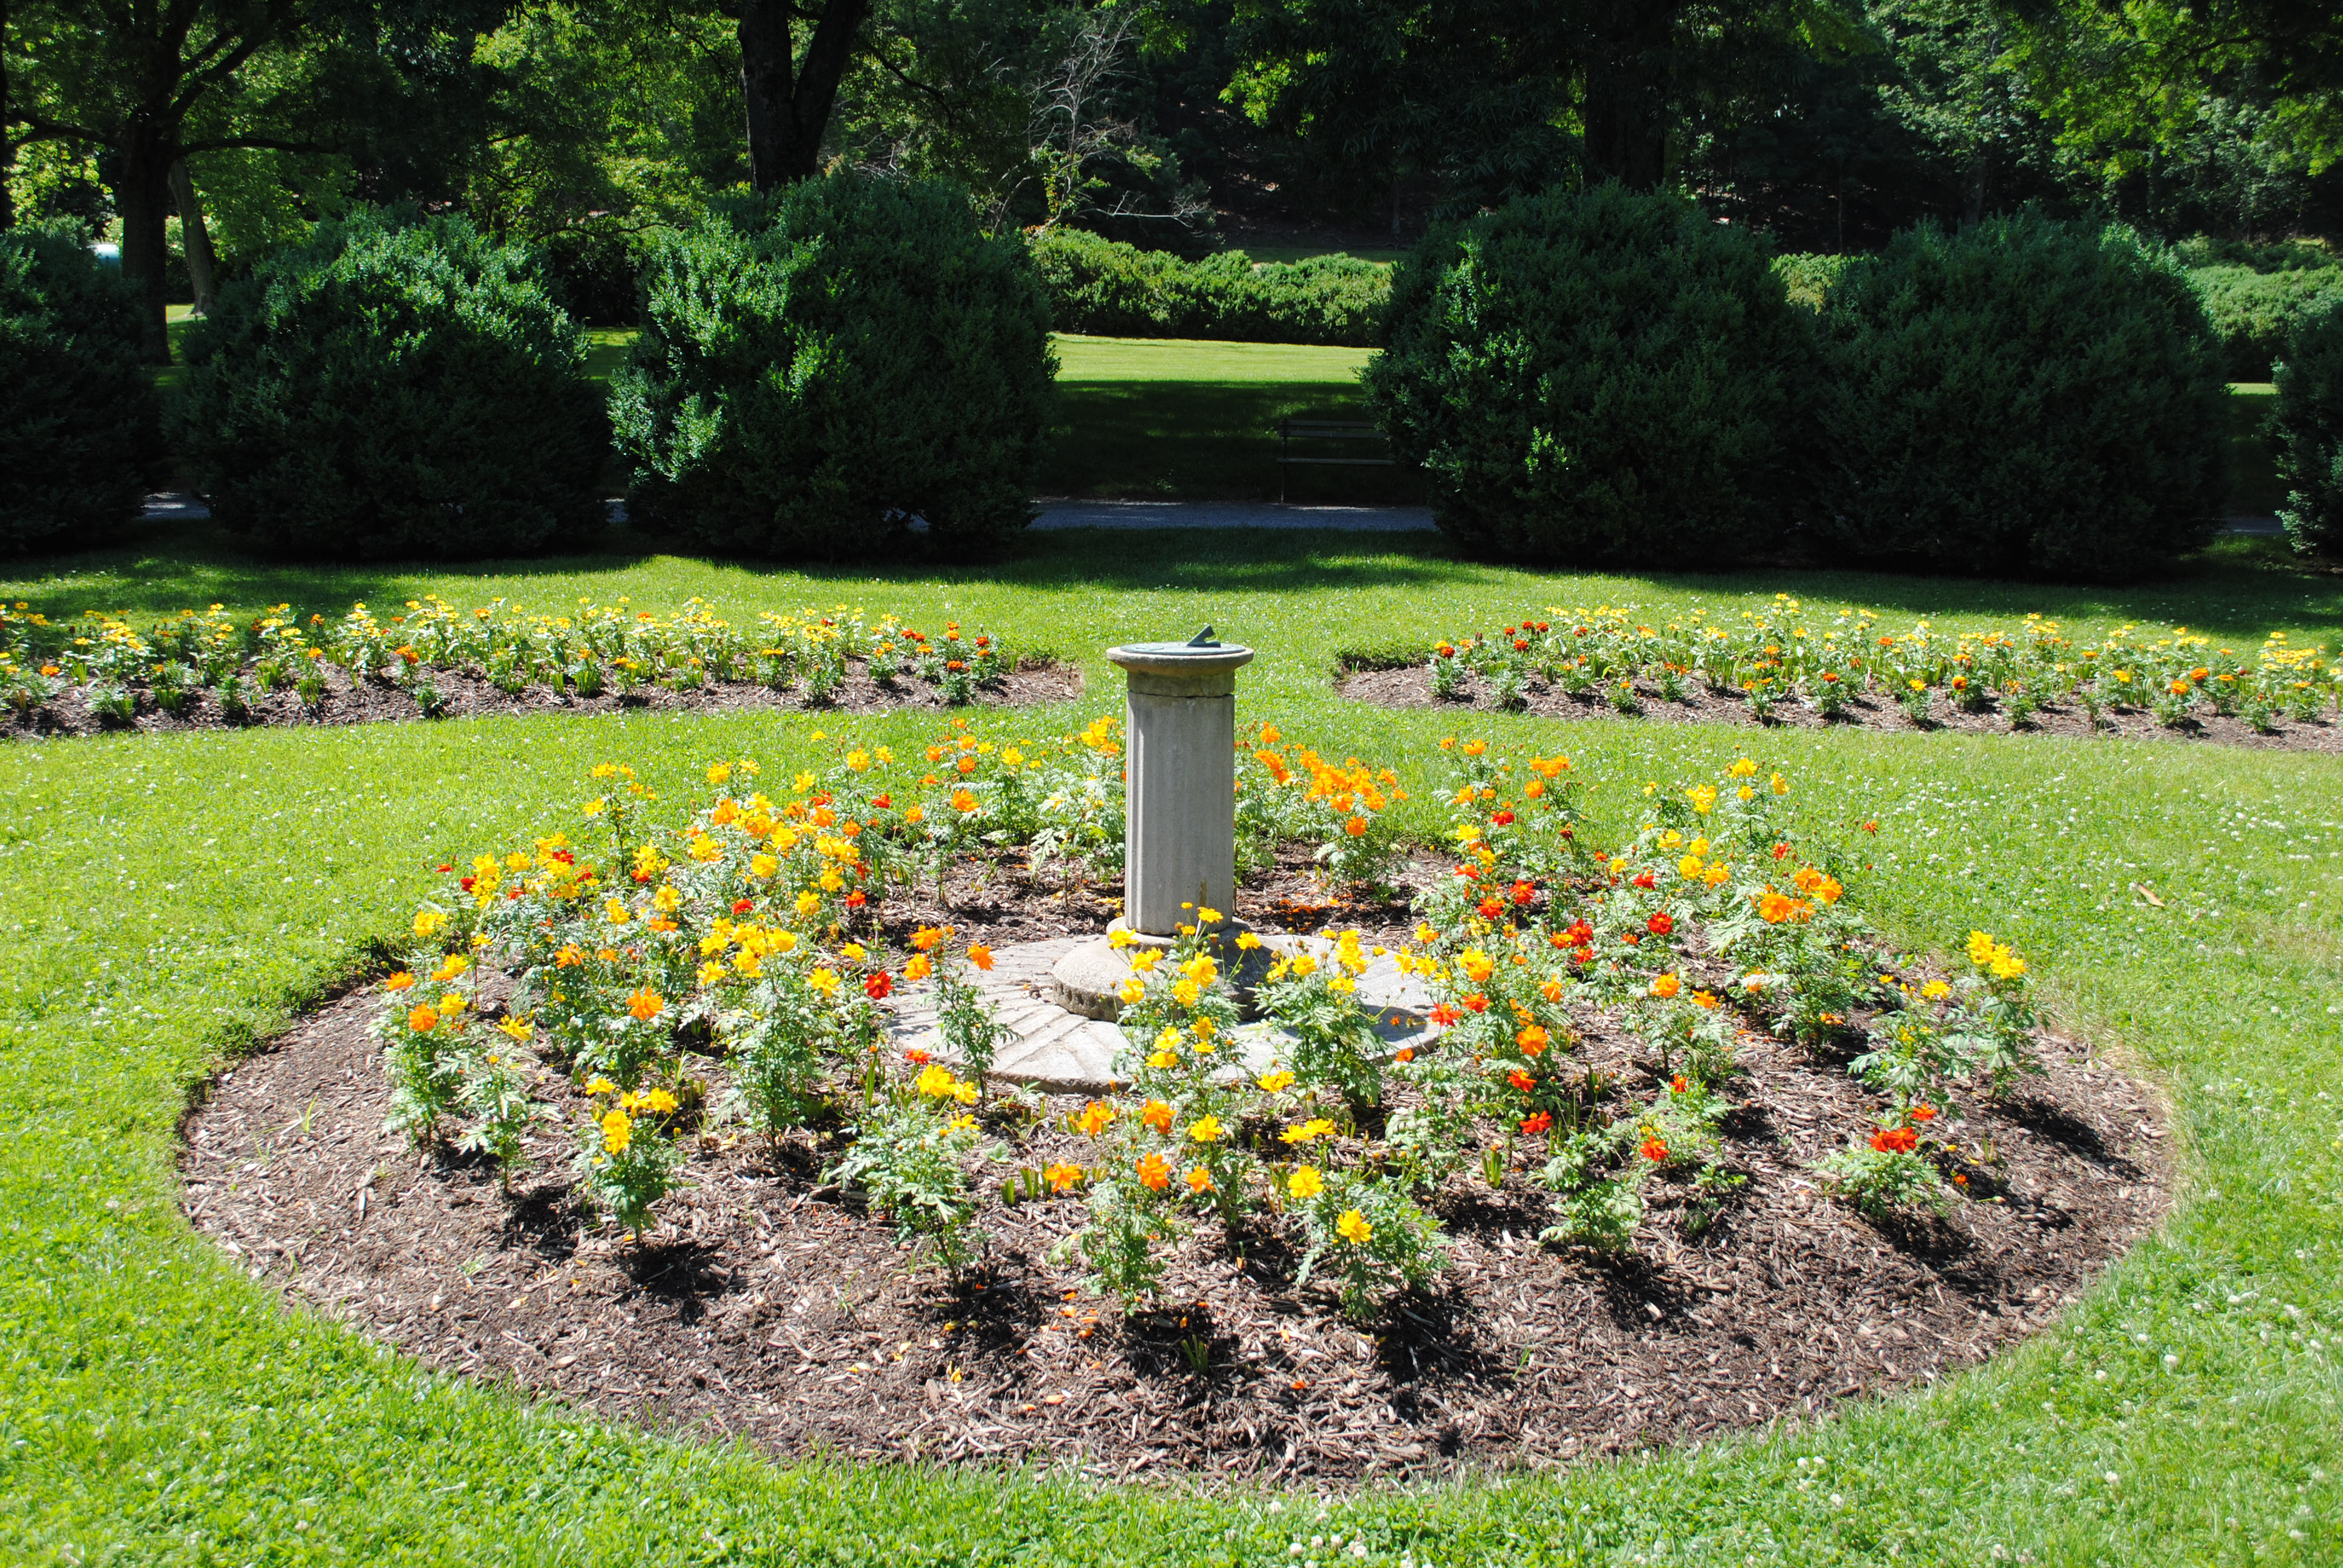 This $50 donation provides bulbs, seeds, and other garden supplies needed to keep Morven Park's formal gardens beautiful!